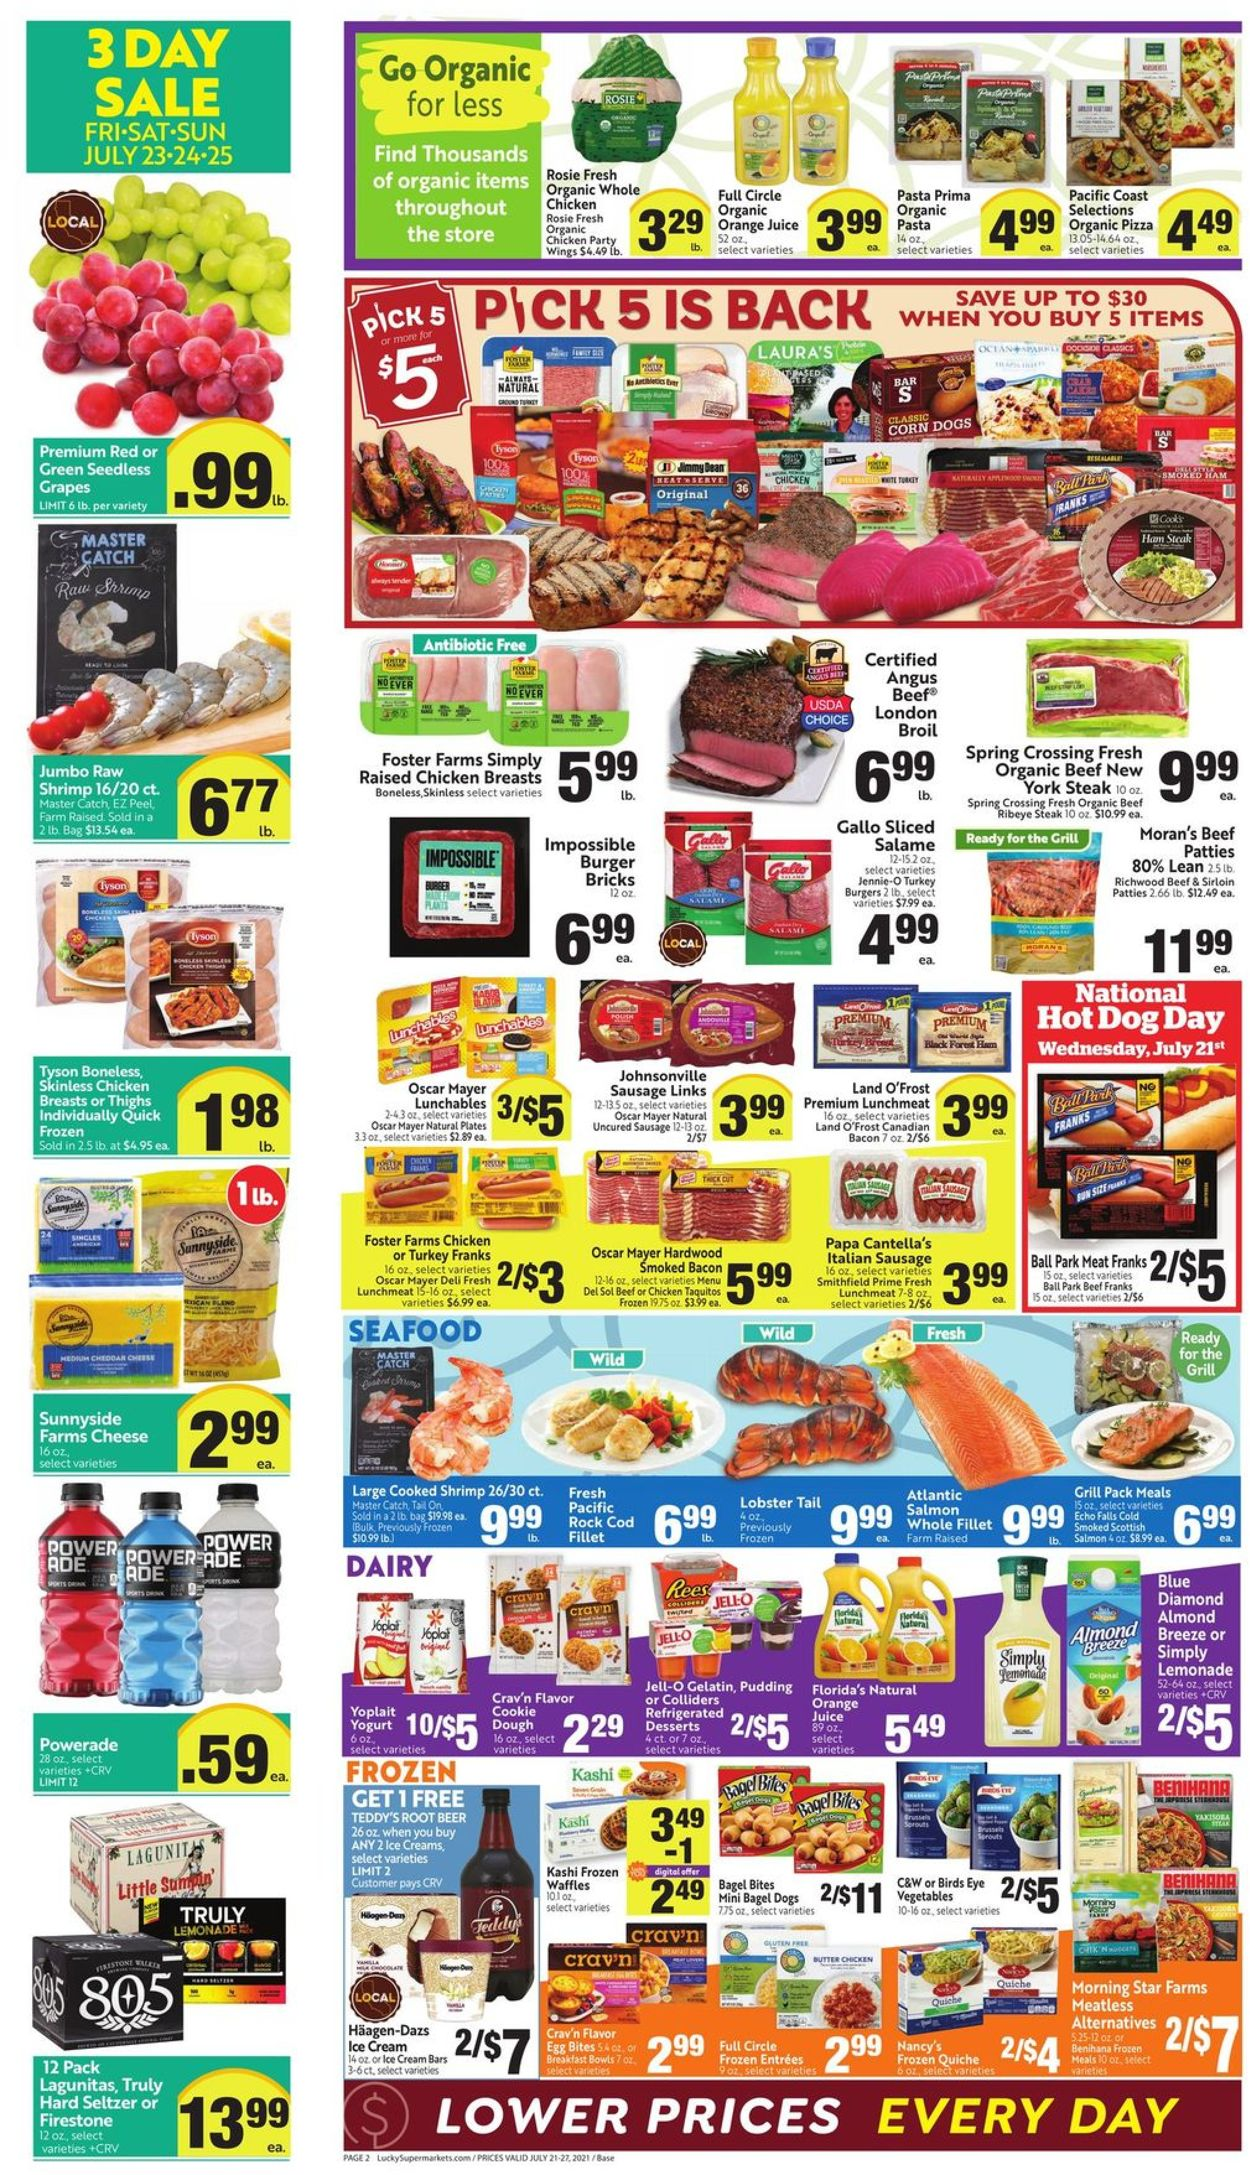 Lucky Supermarkets Weekly Ad Circular - valid 07/21-07/27/2021 (Page 2)